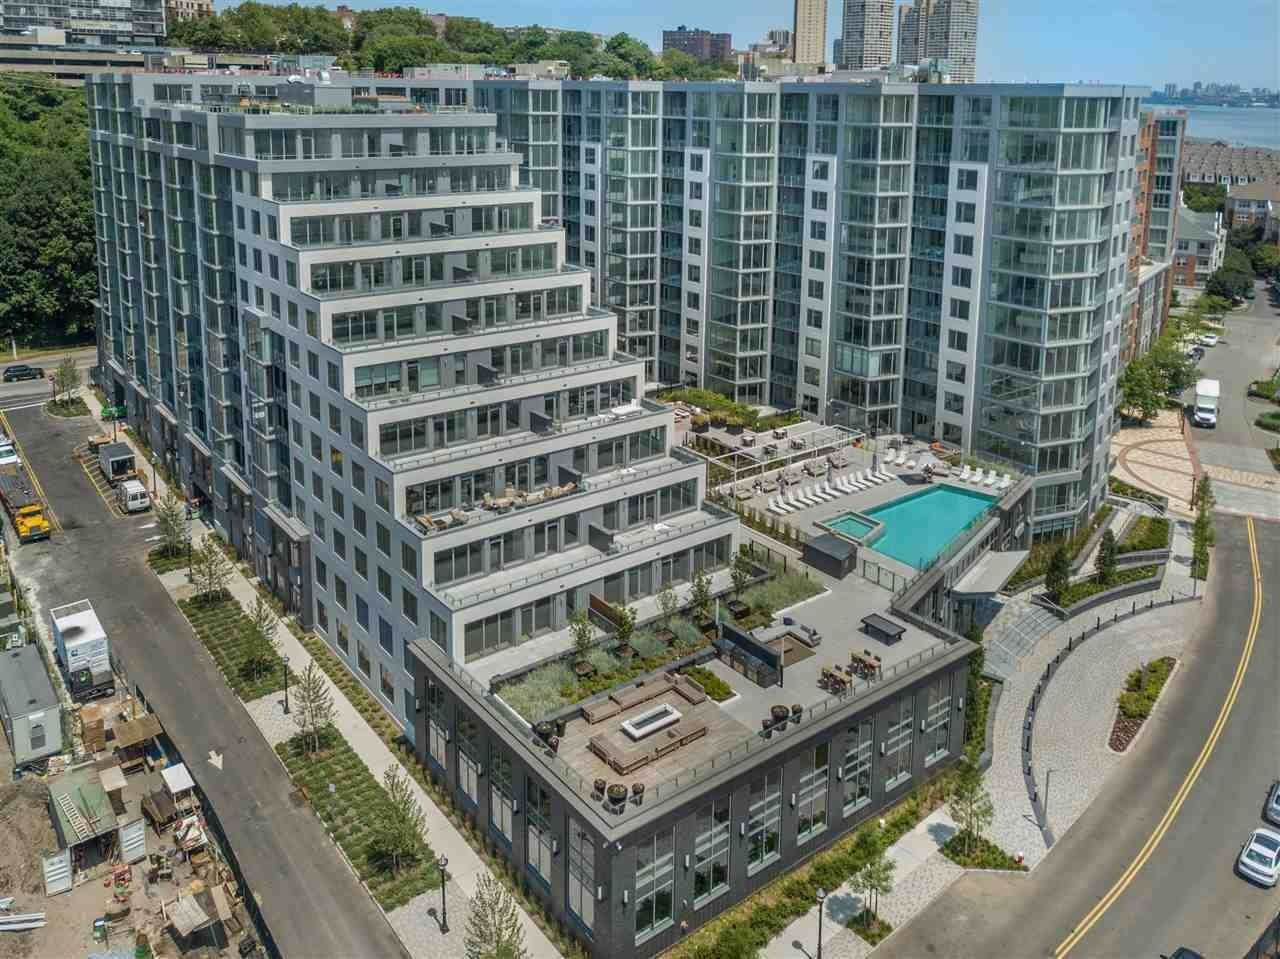 Condominium for Sale at 9 AVENUE AT PORT IMPERIAL #110 West New York, New Jersey, 07093 United States